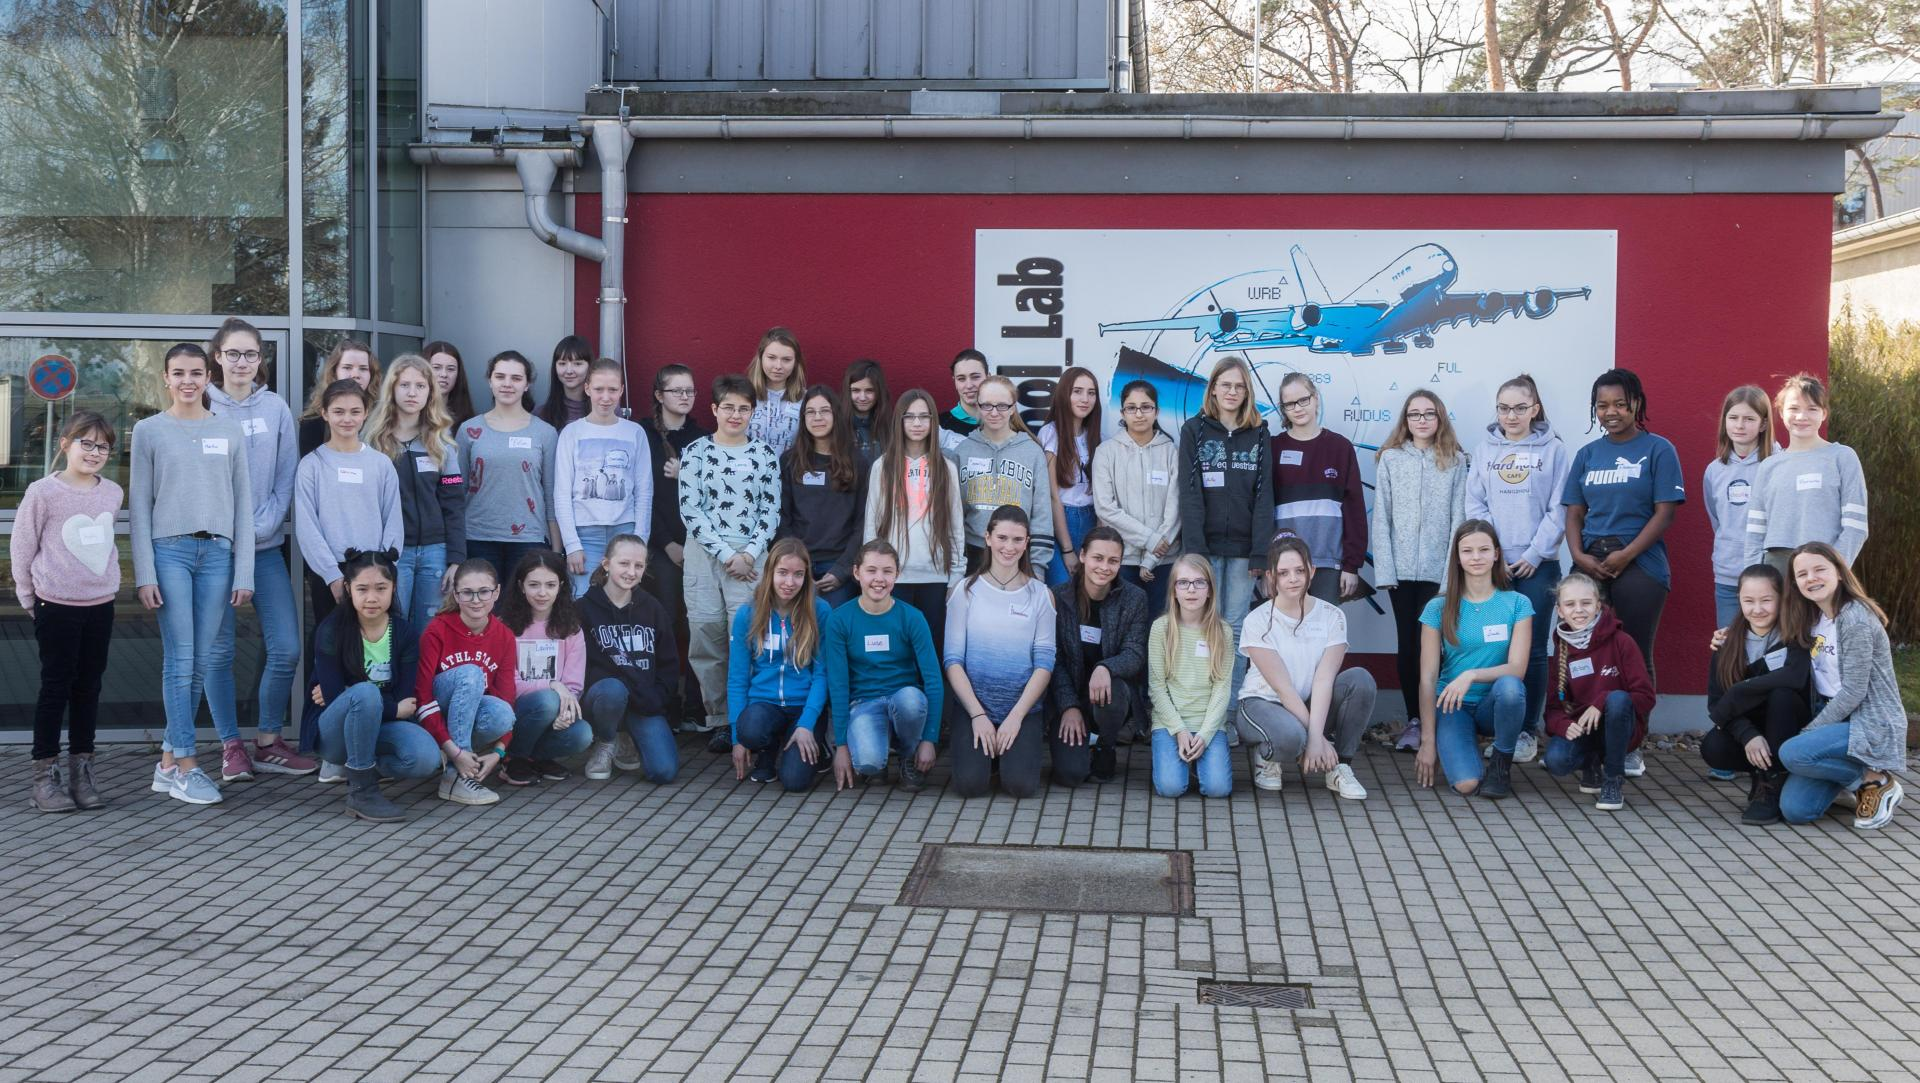 Girls'Day 2019 in Braunschweig